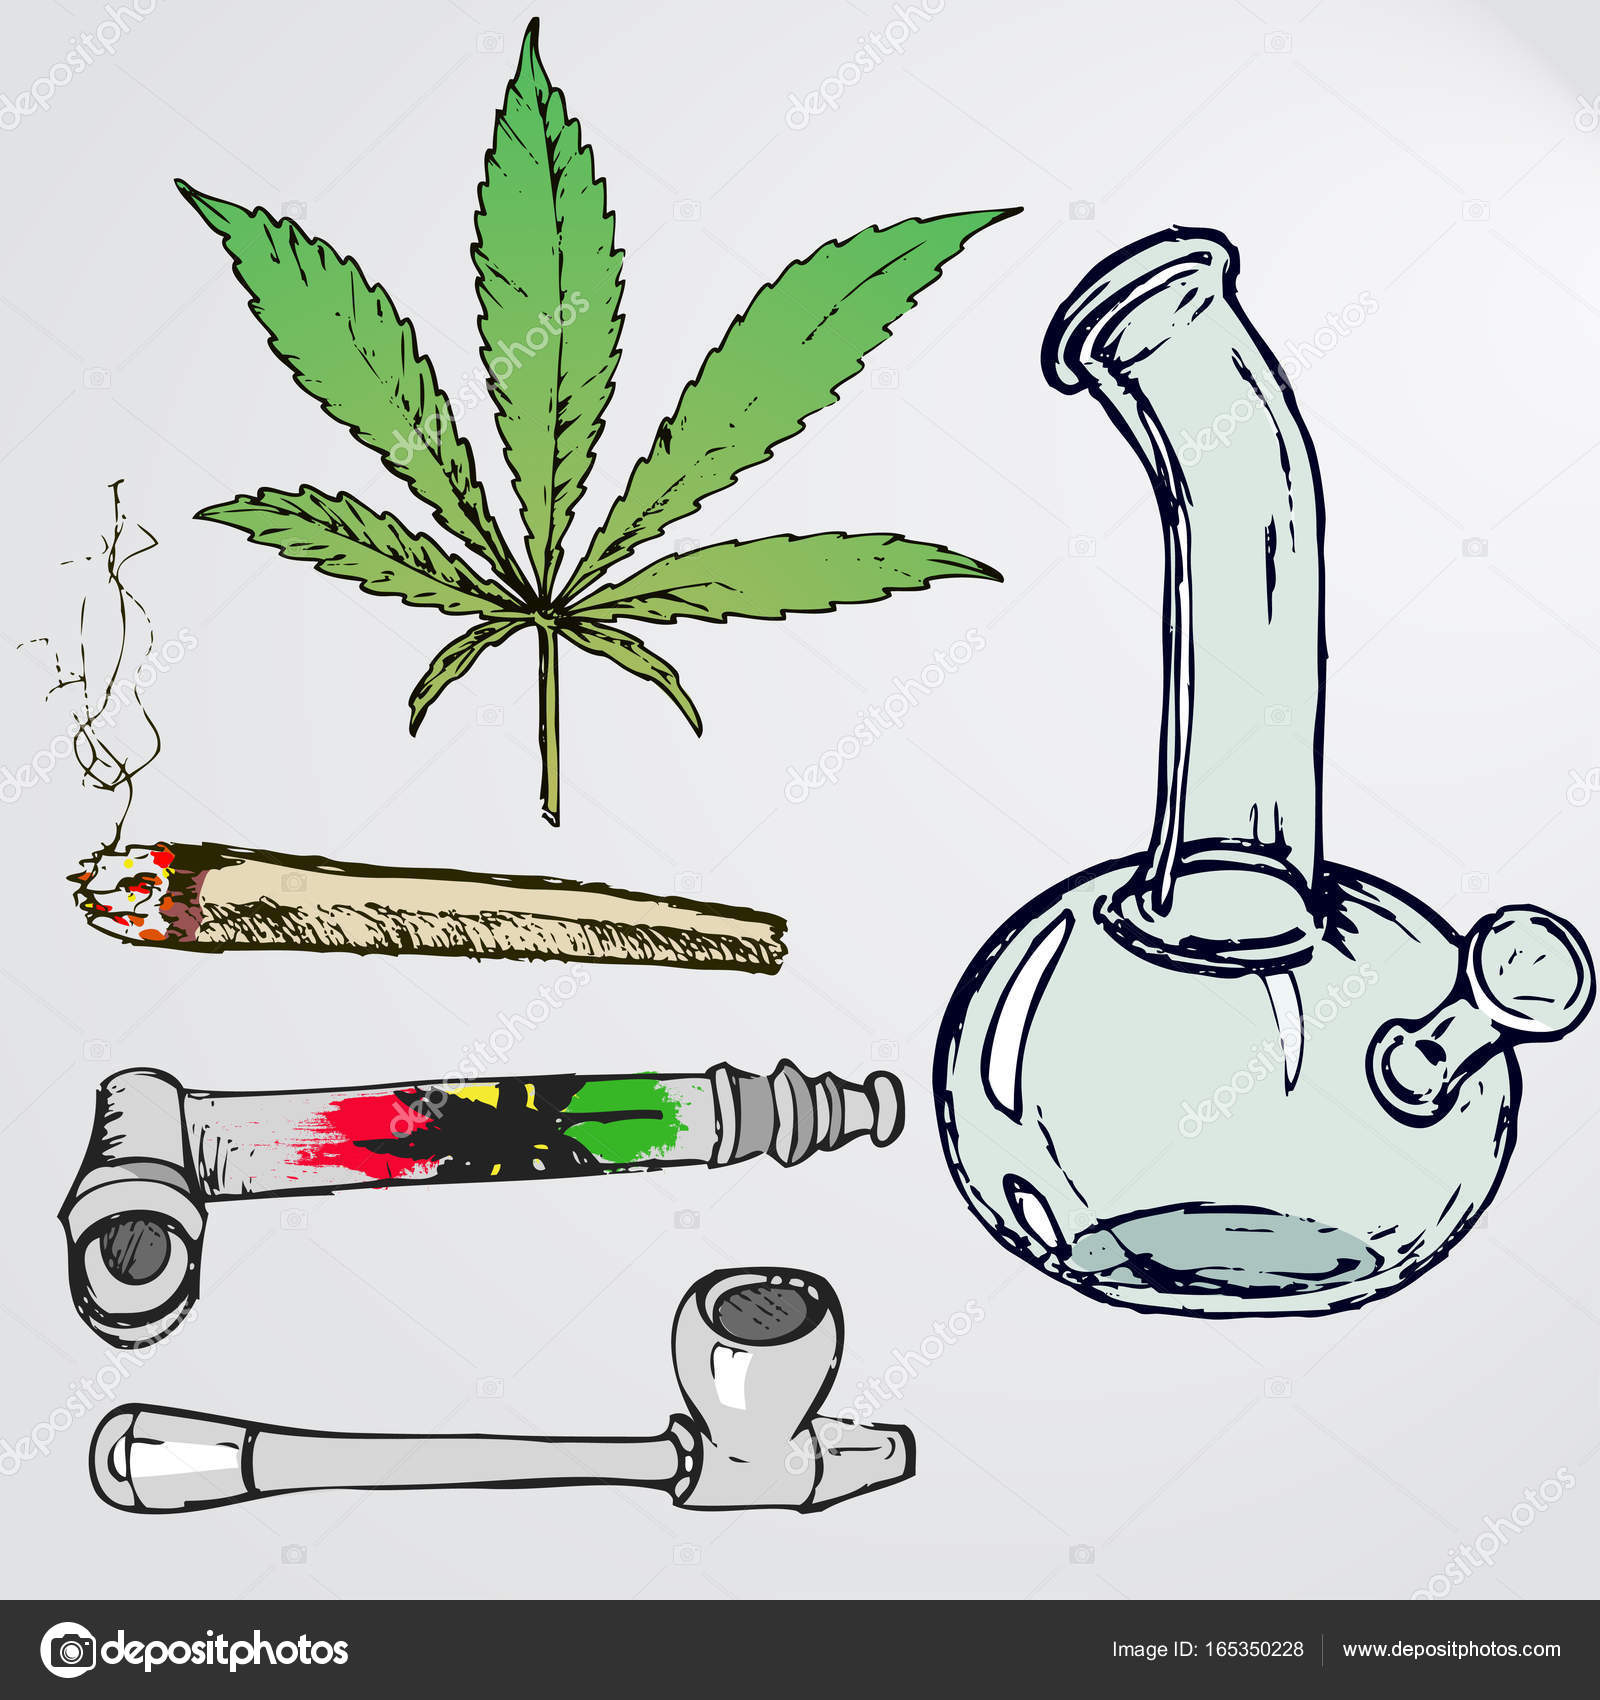 Weed Joint Drawing at GetDrawings.com | Free for personal ...